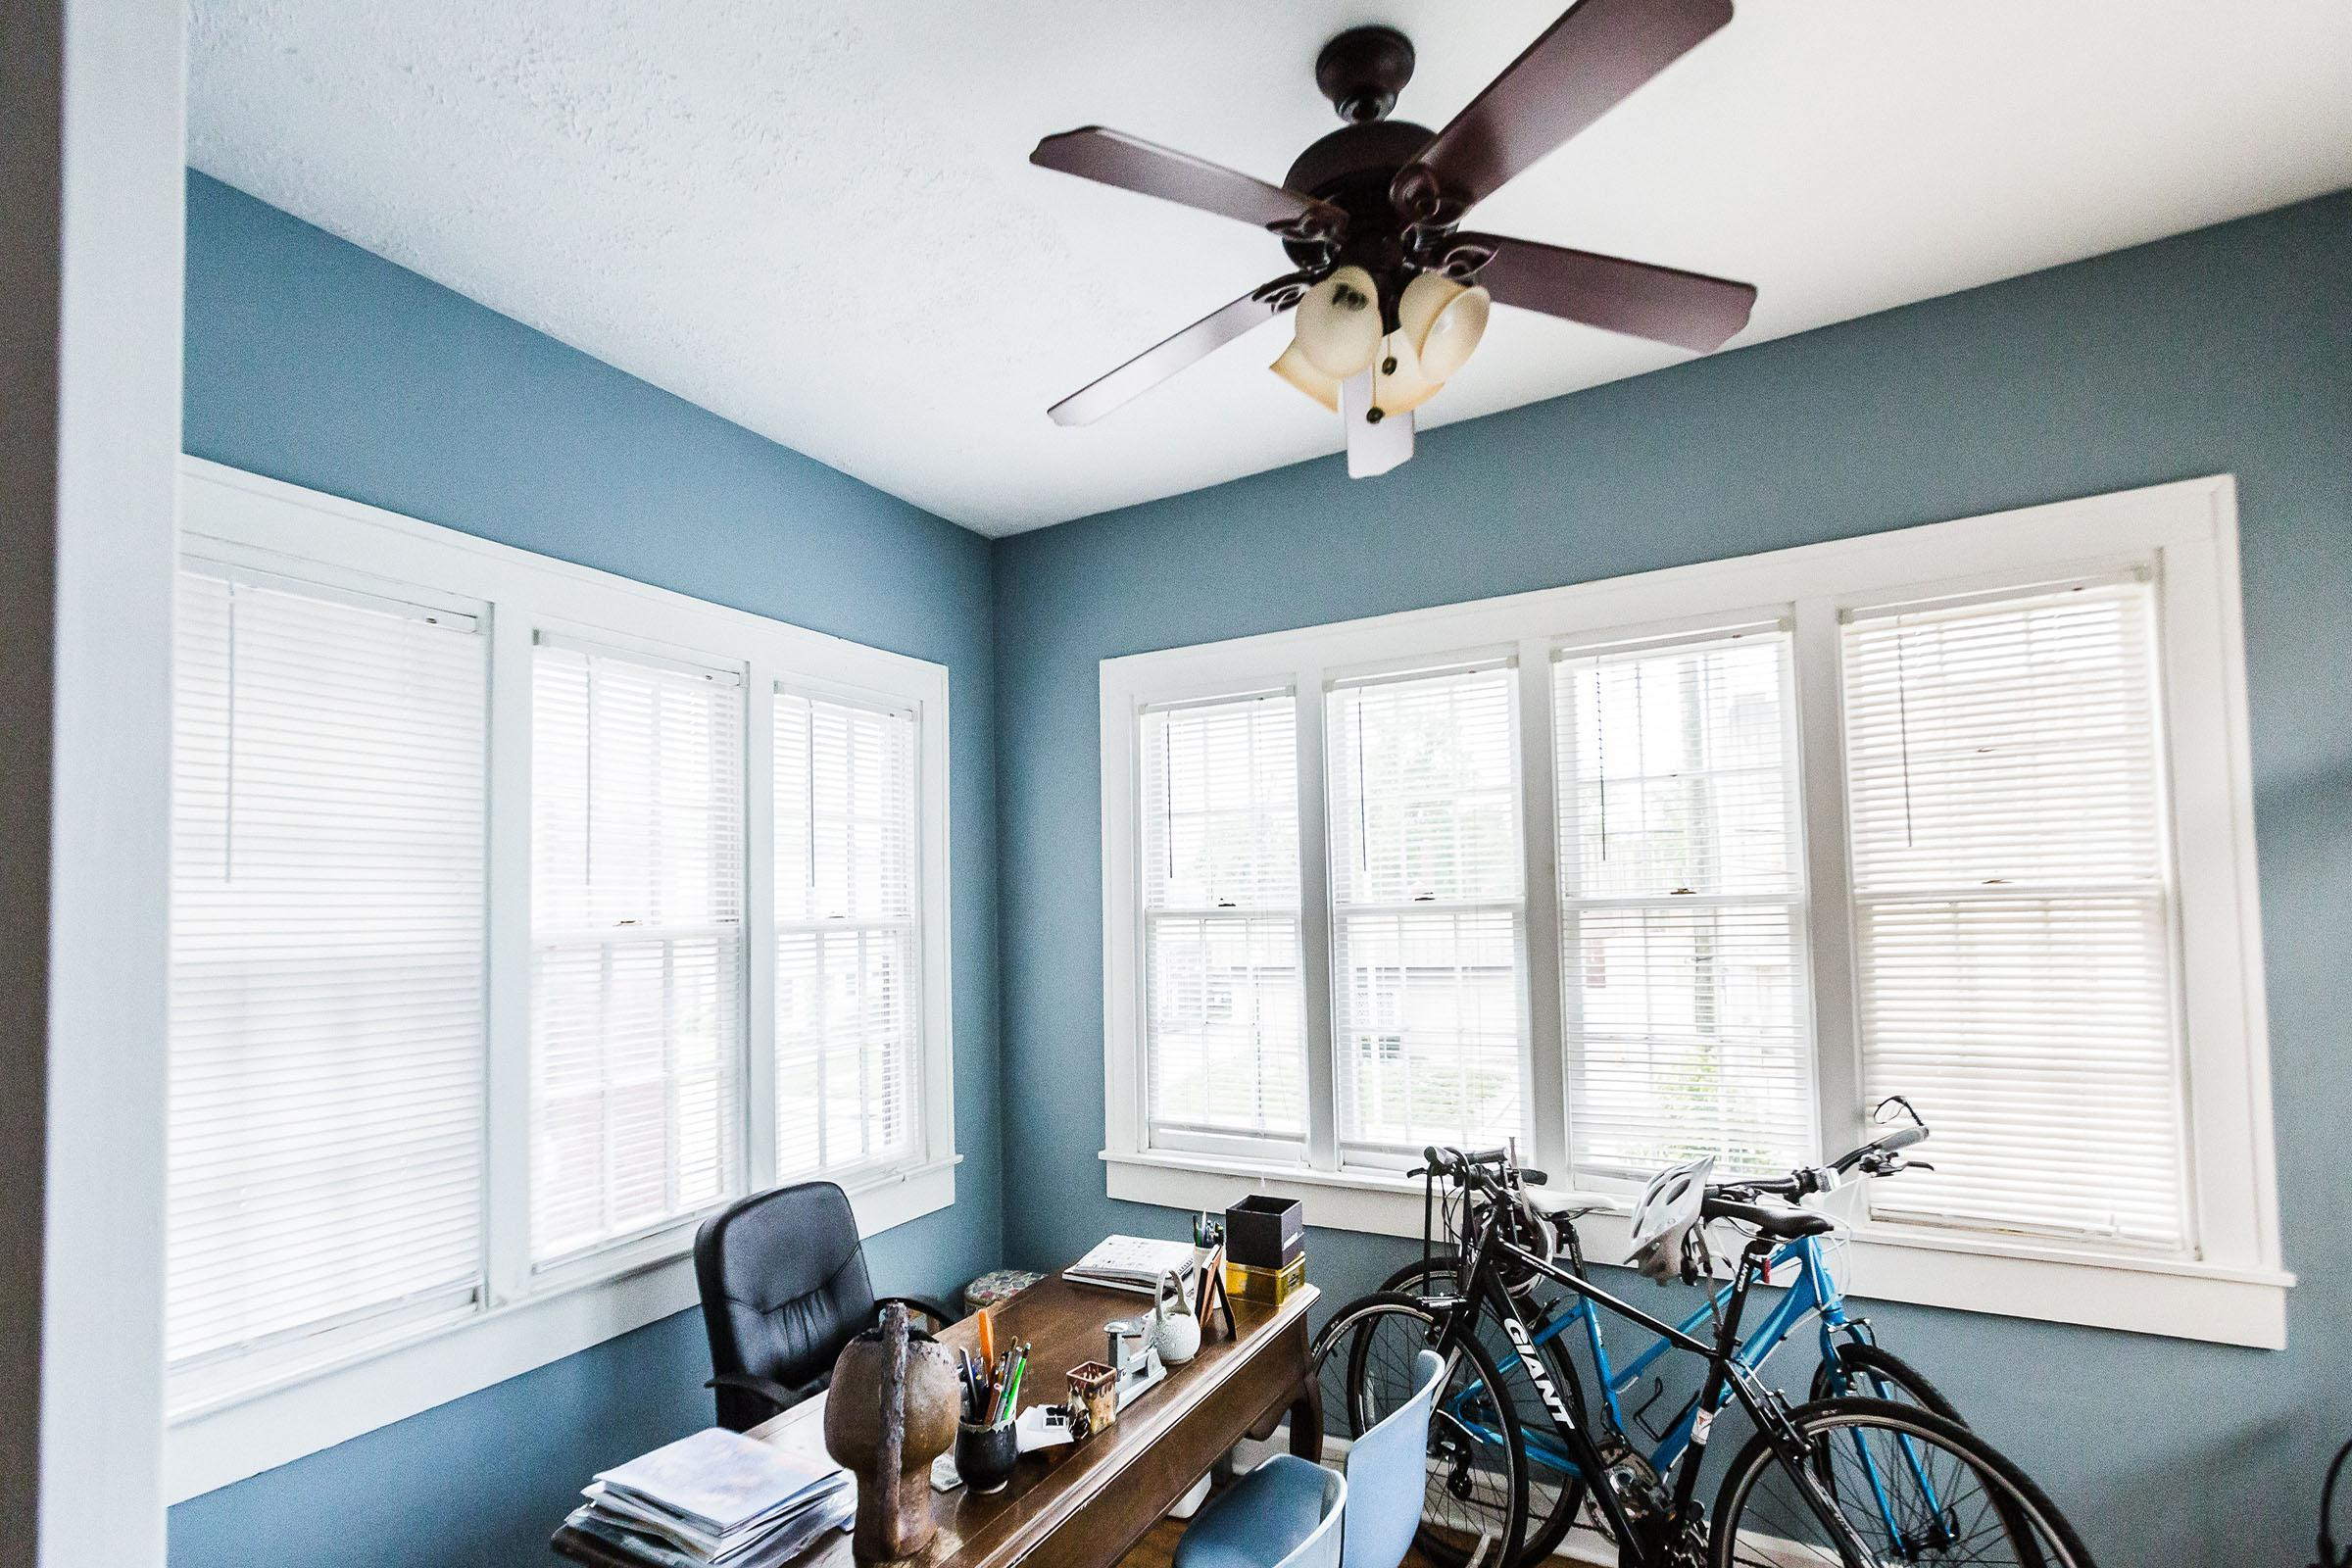 a room with a bicycle in front of a window